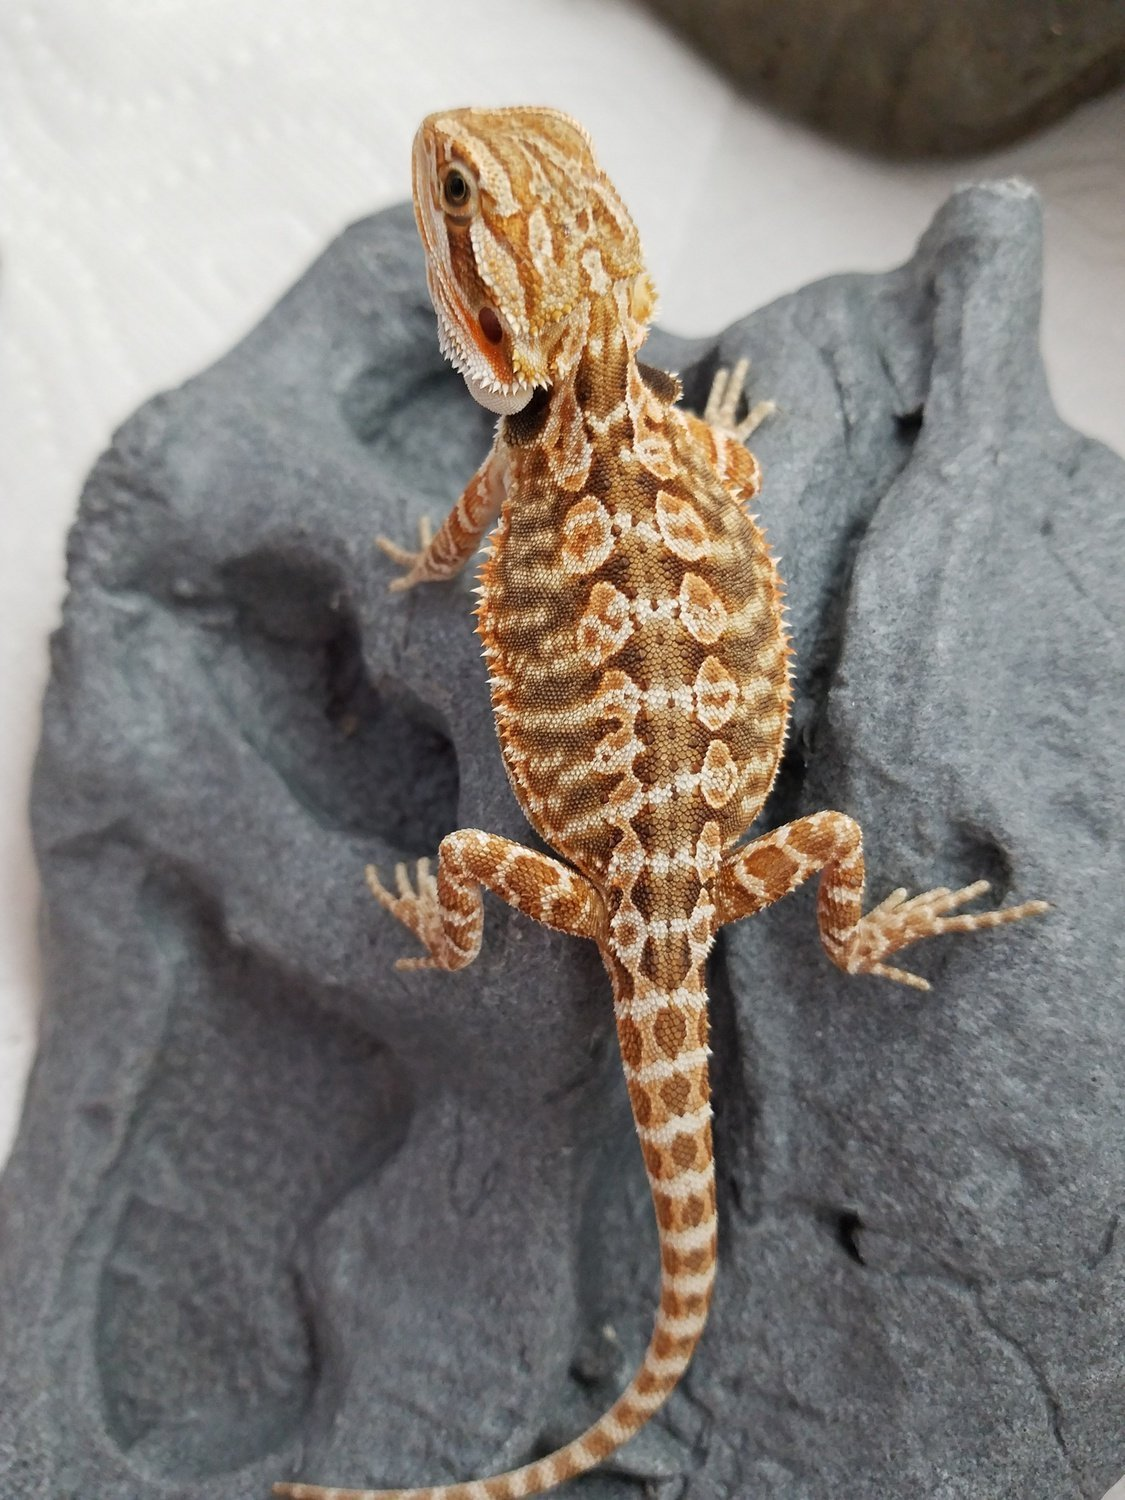 Leatherback normal bearded dragon